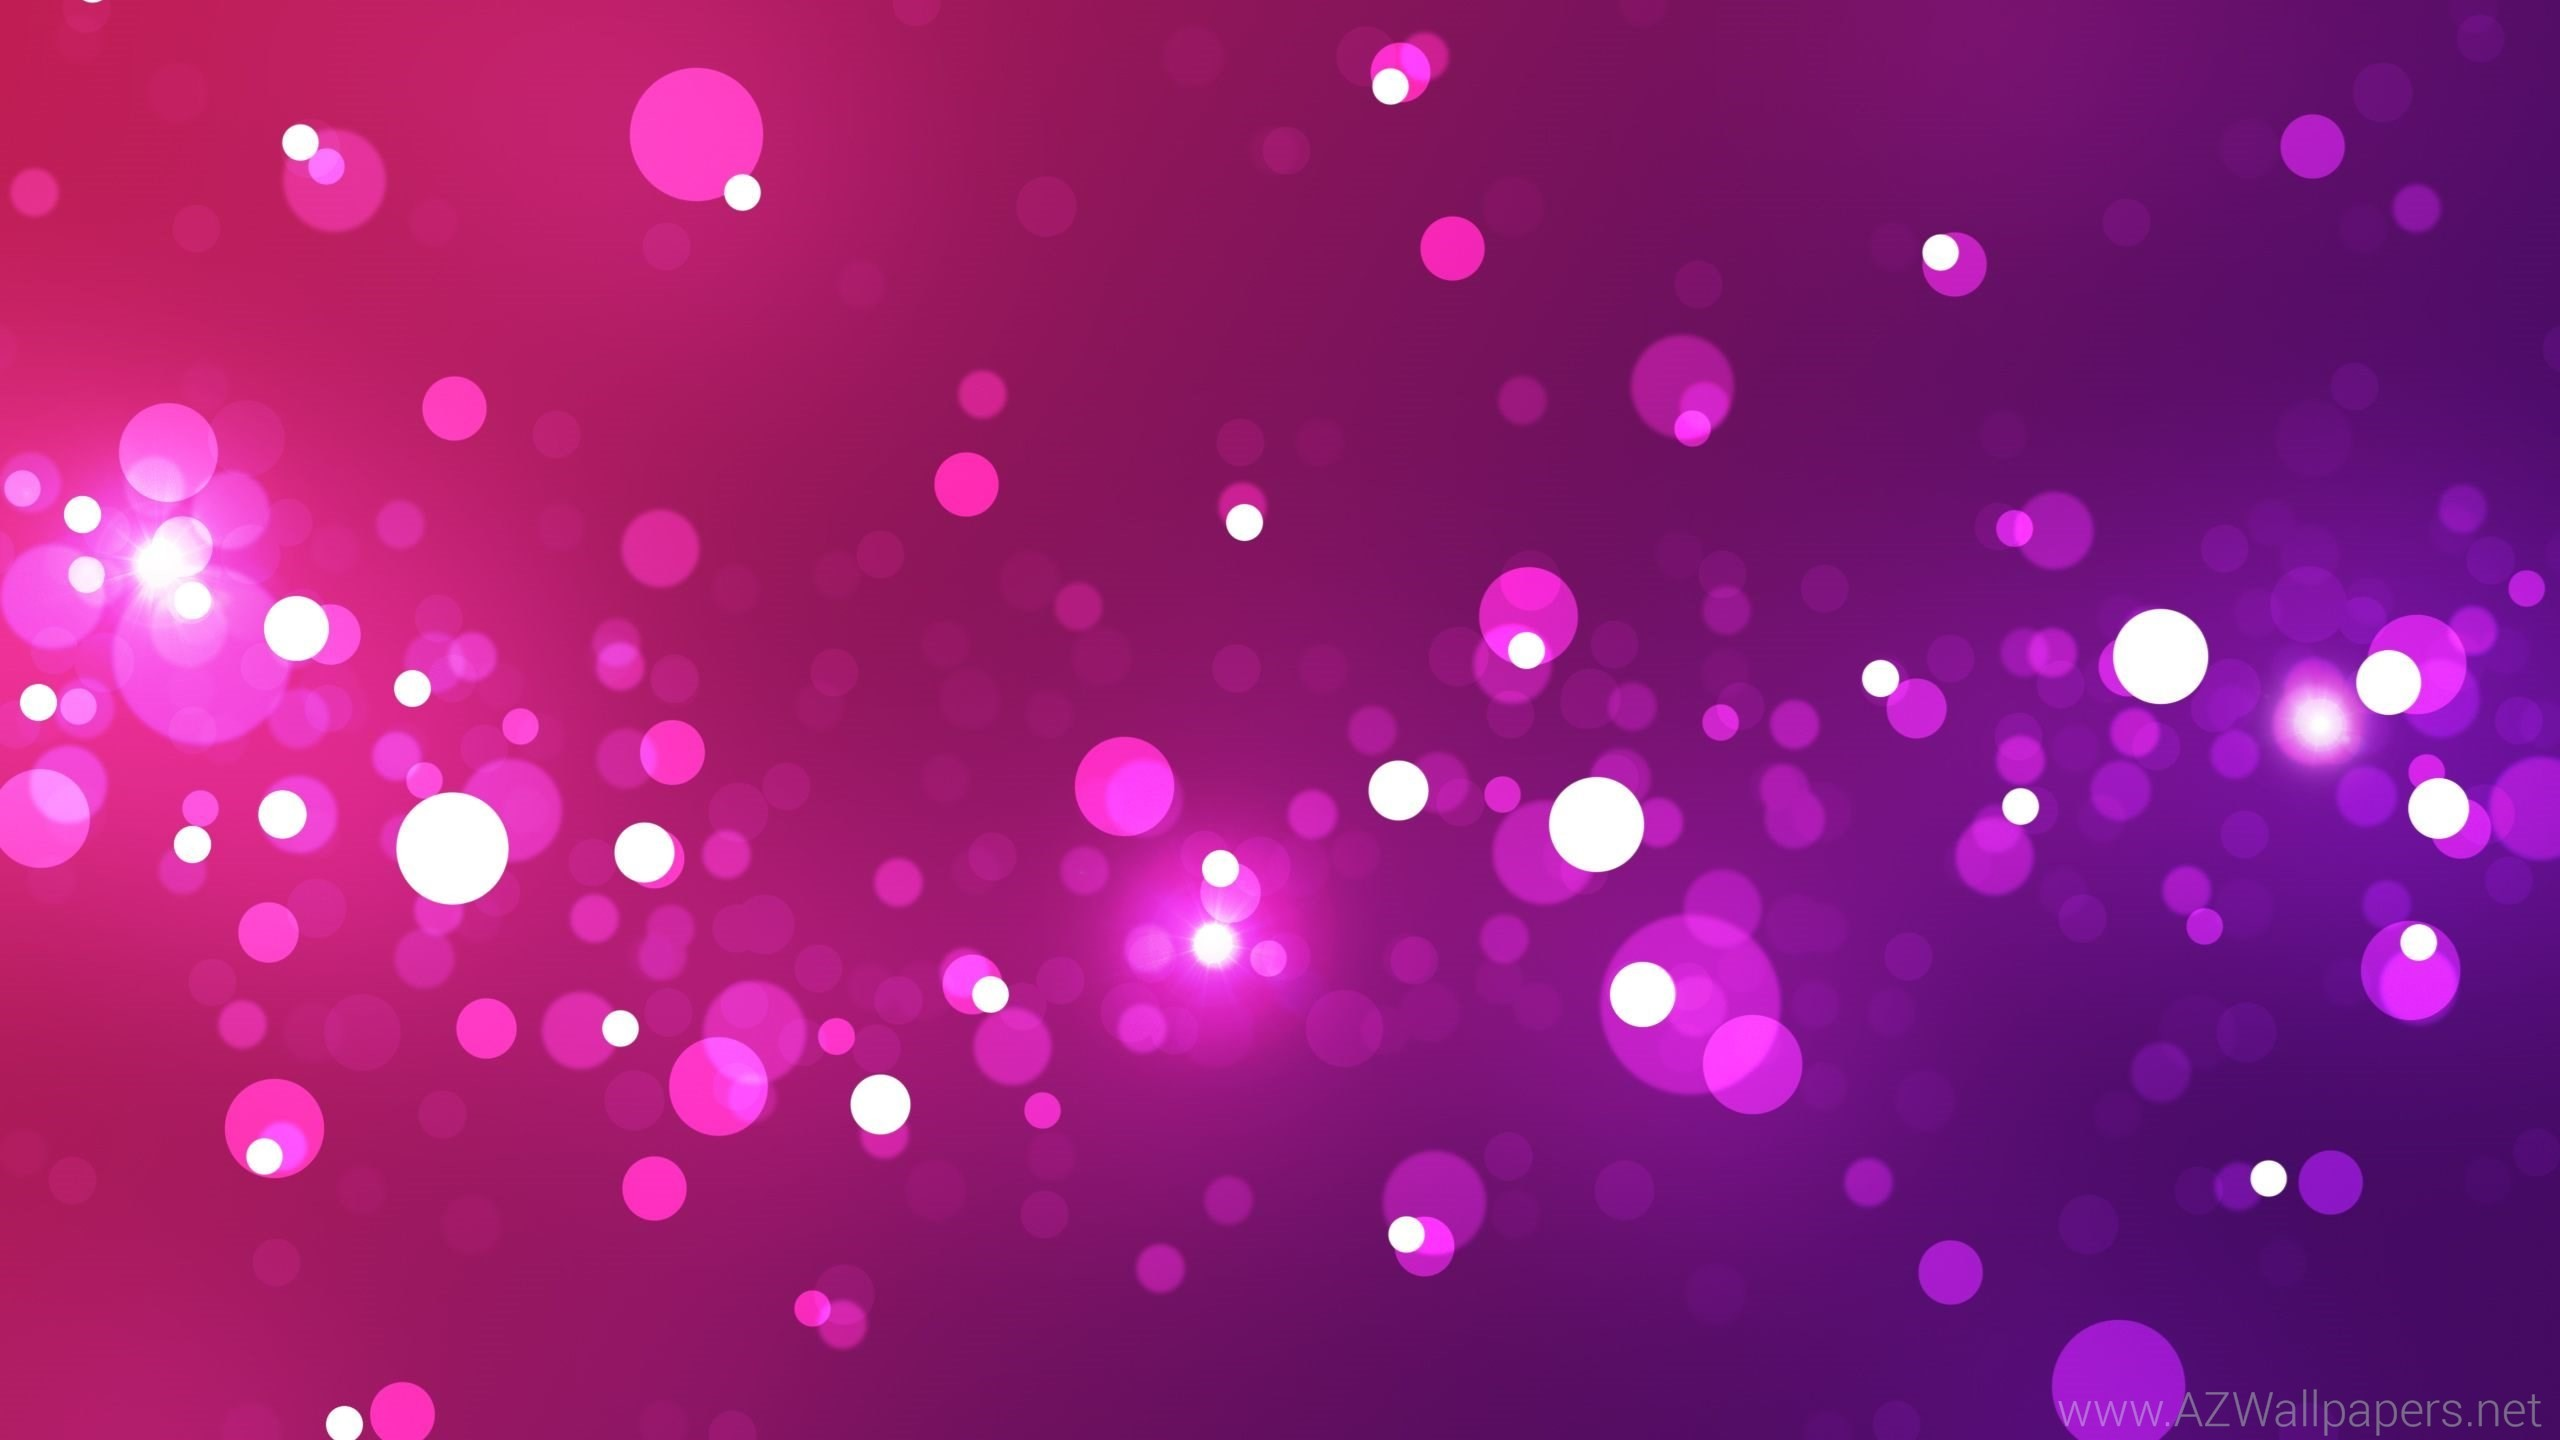 Pink And Purple Glitter Wallpapers (67+ Images